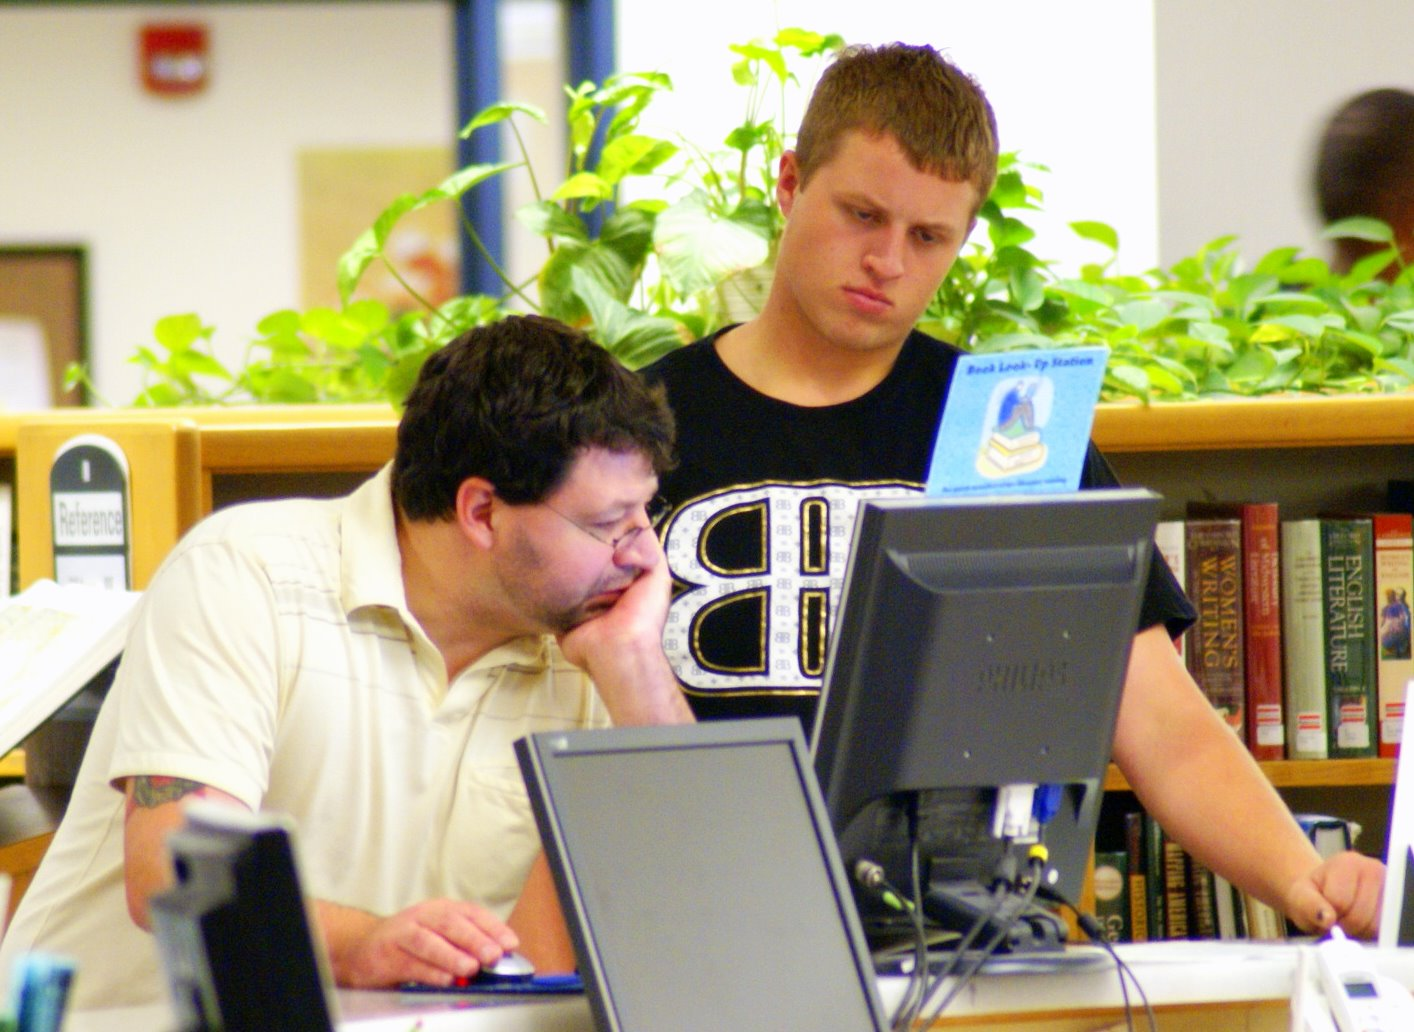 Librarian helping student at computer